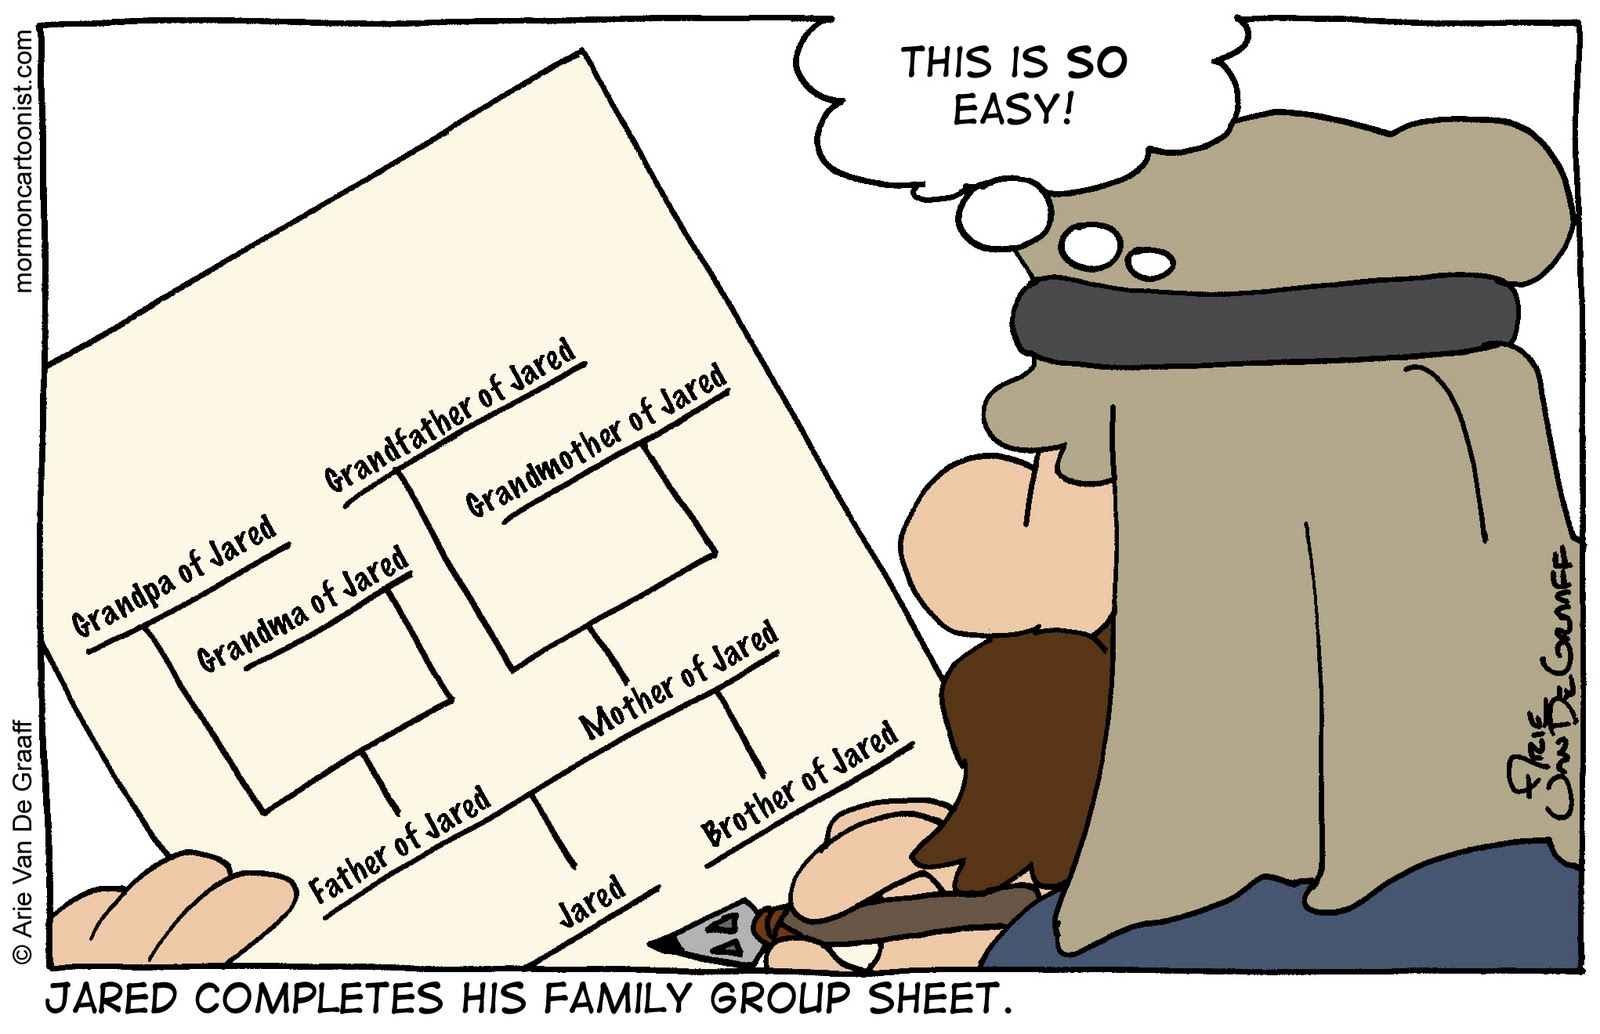 mormon cartoonist jared u0027s family group sheet